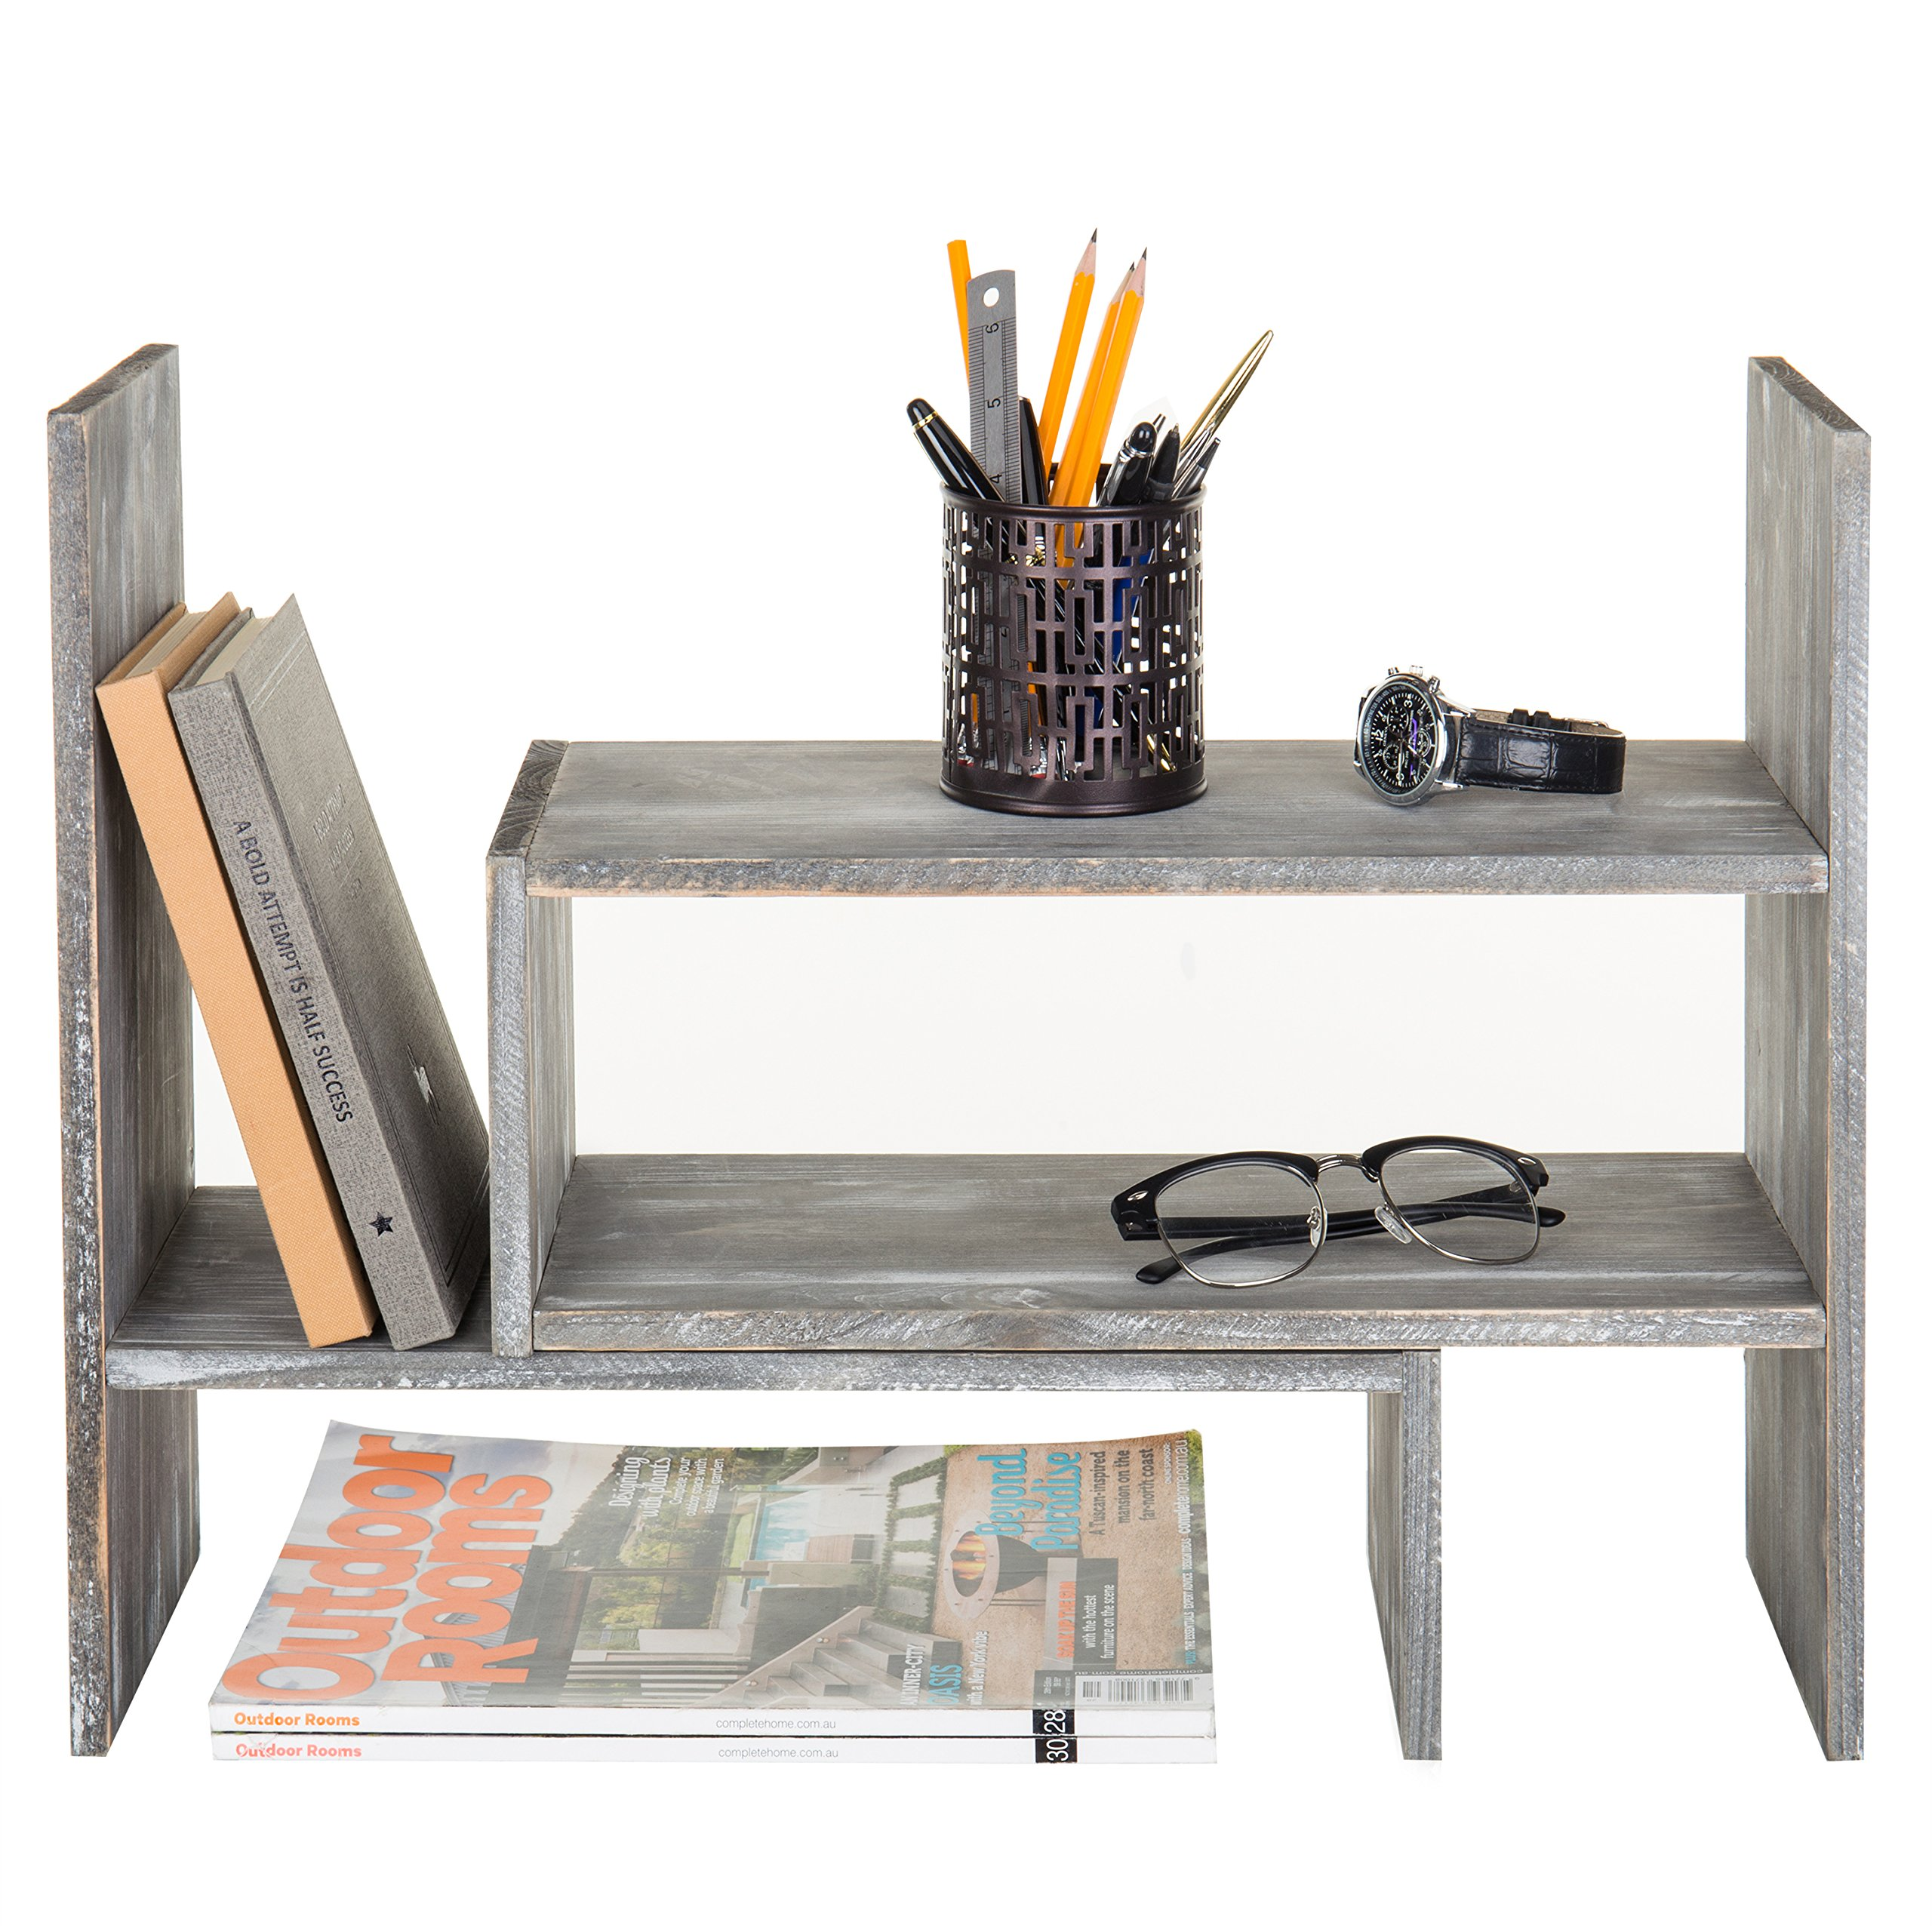 Distressed Gray Wood Adjustable Desktop Bookshelves, Countertop Display Shelves by MyGift